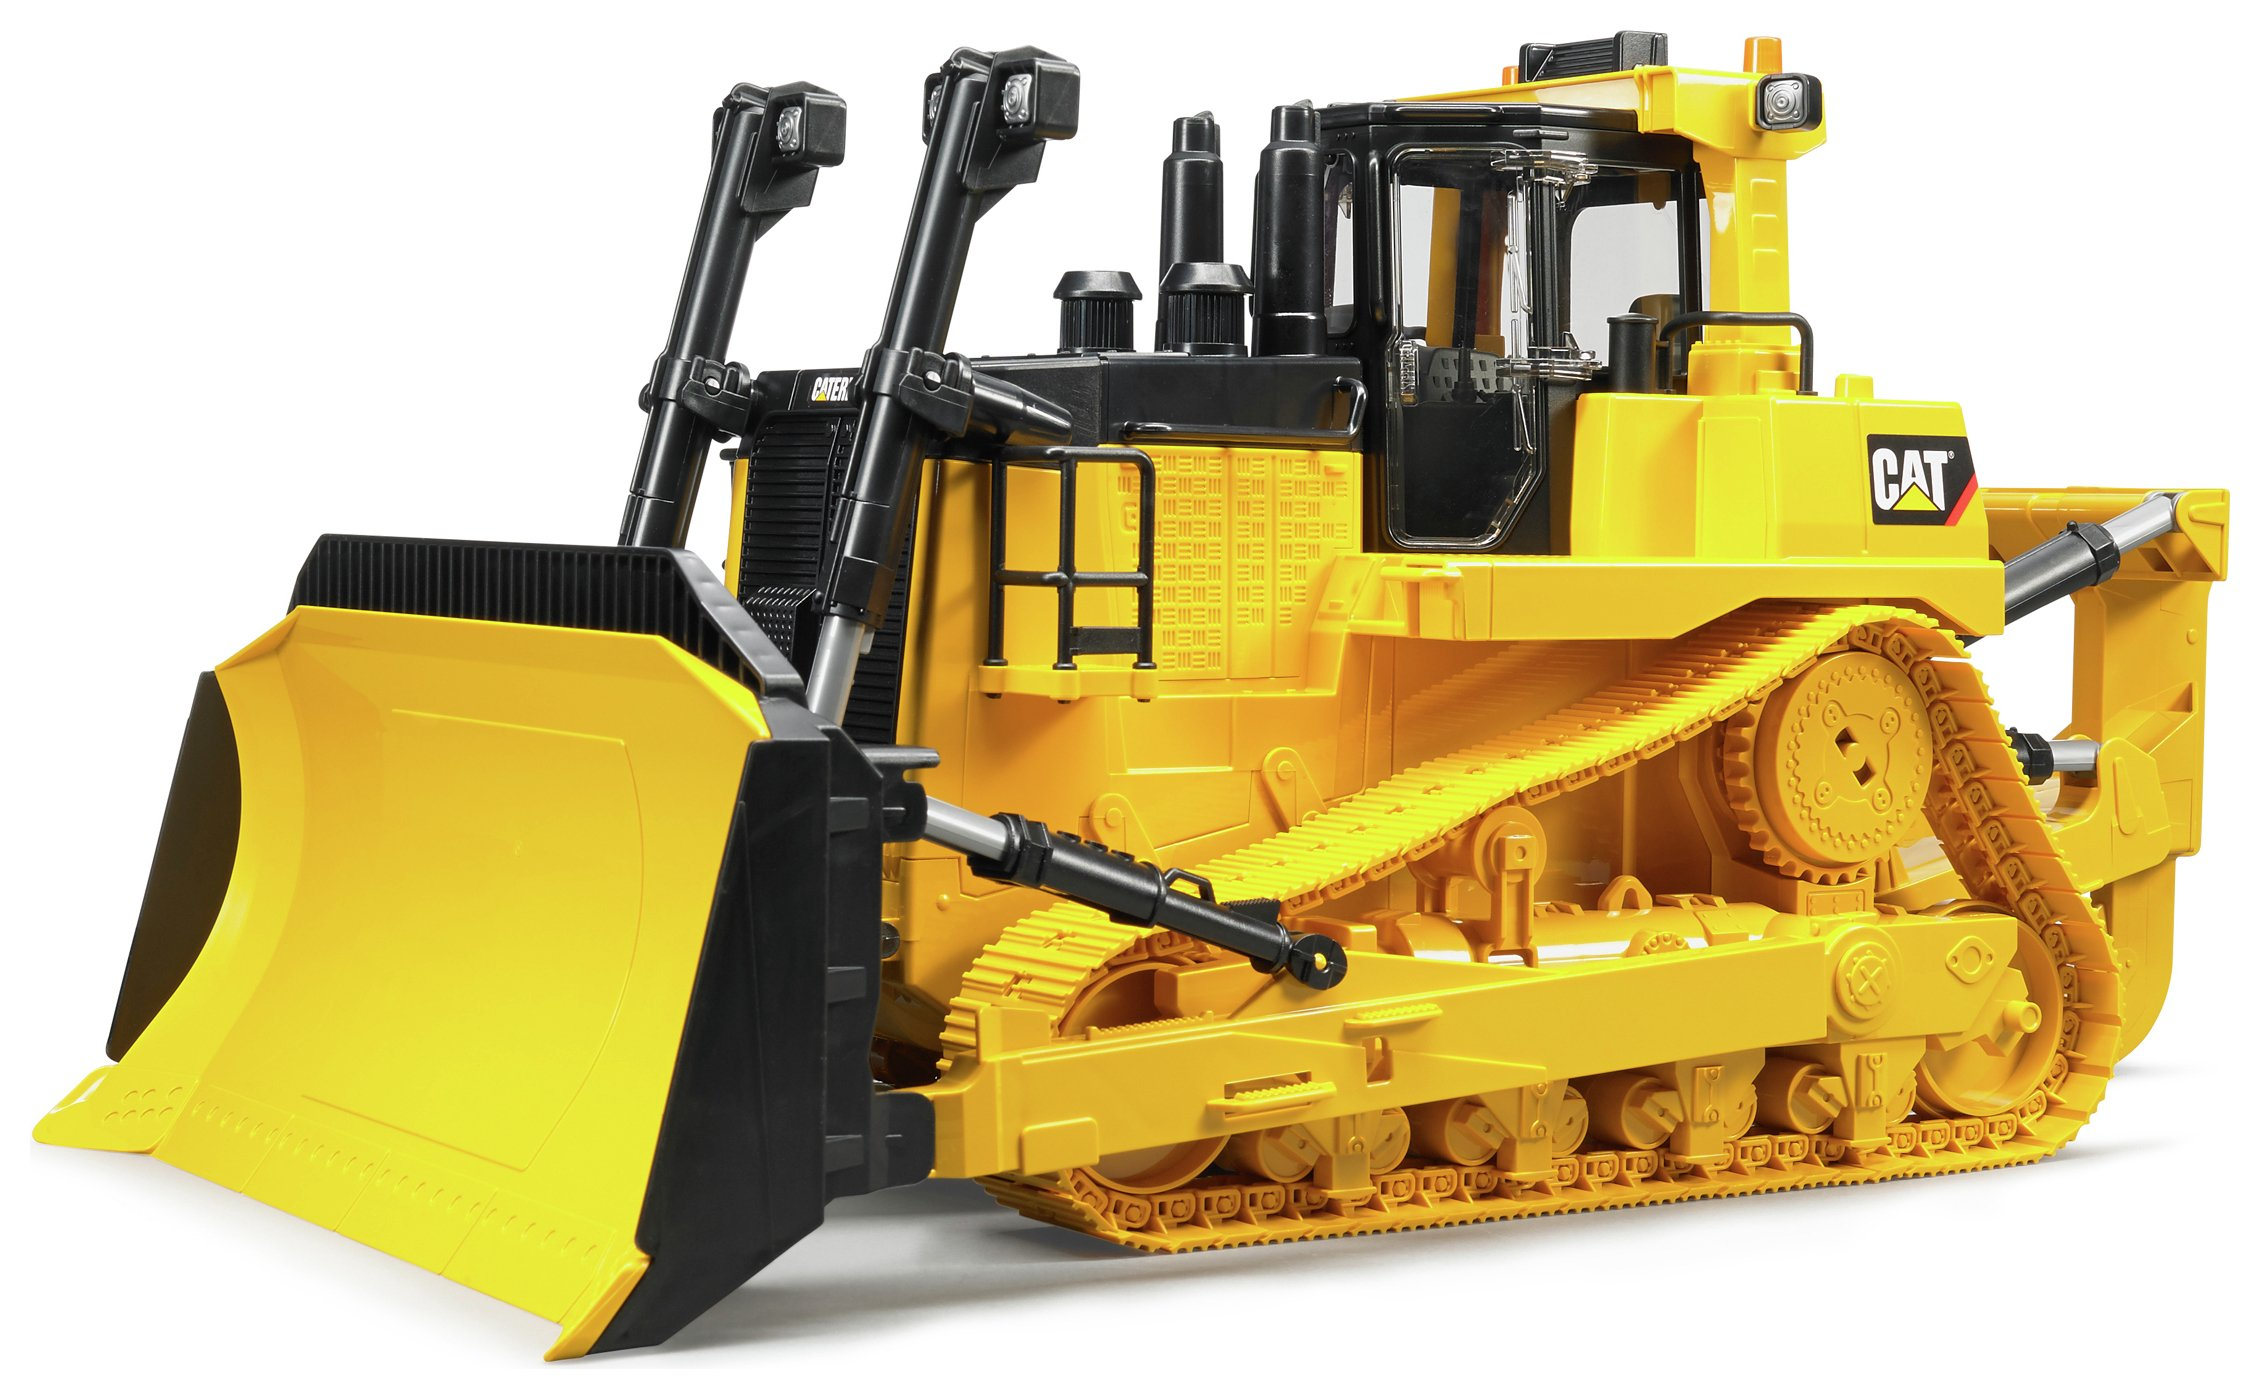 Image of Bruder 02452 Cat Large Track- Type Tracto.